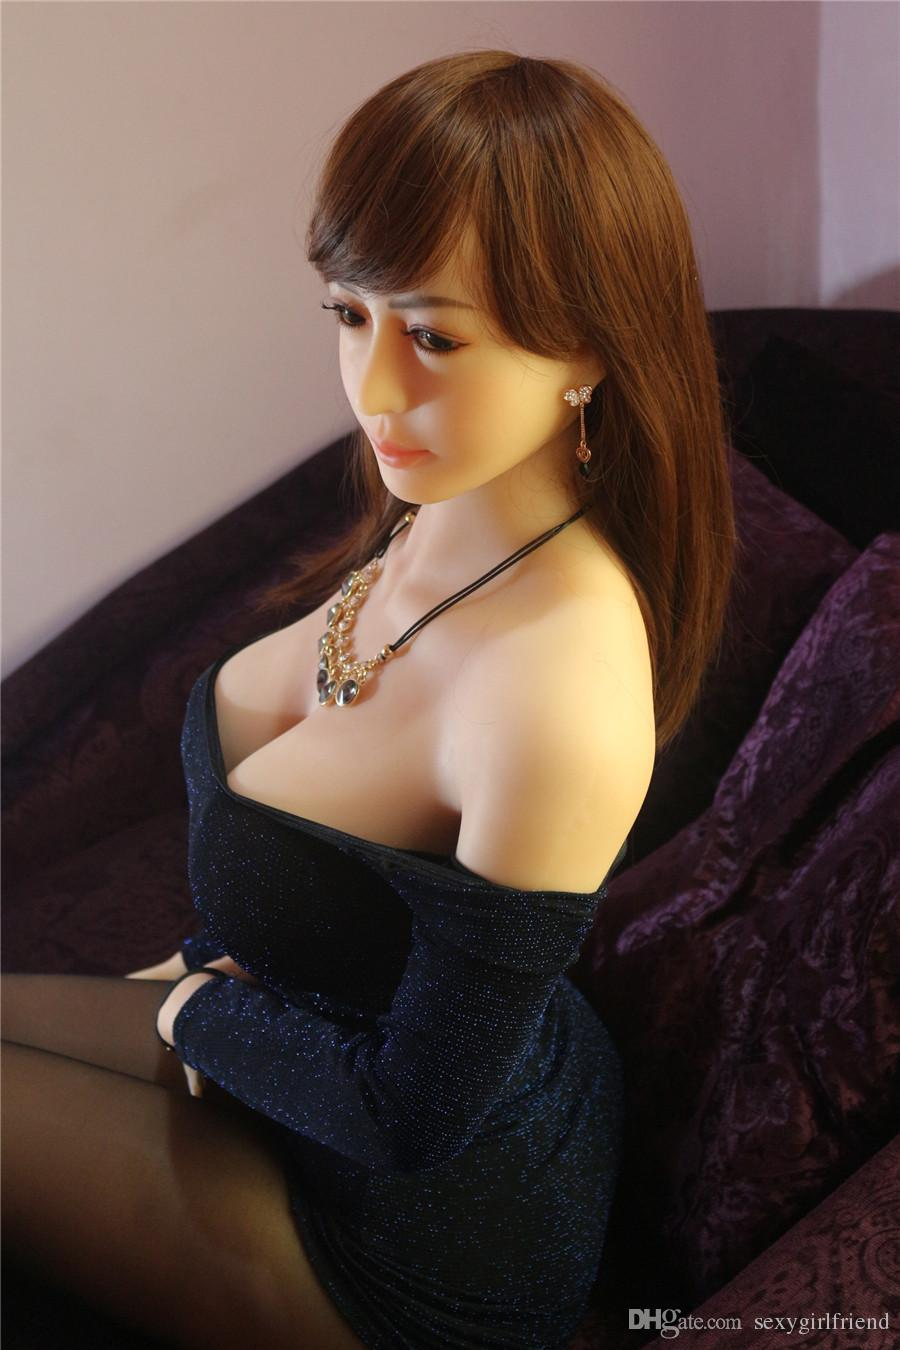 2016 NEW 158cm Top quality janpanse real doll, full size silicone sex doll love doll, oral vagina pussy anal adult doll